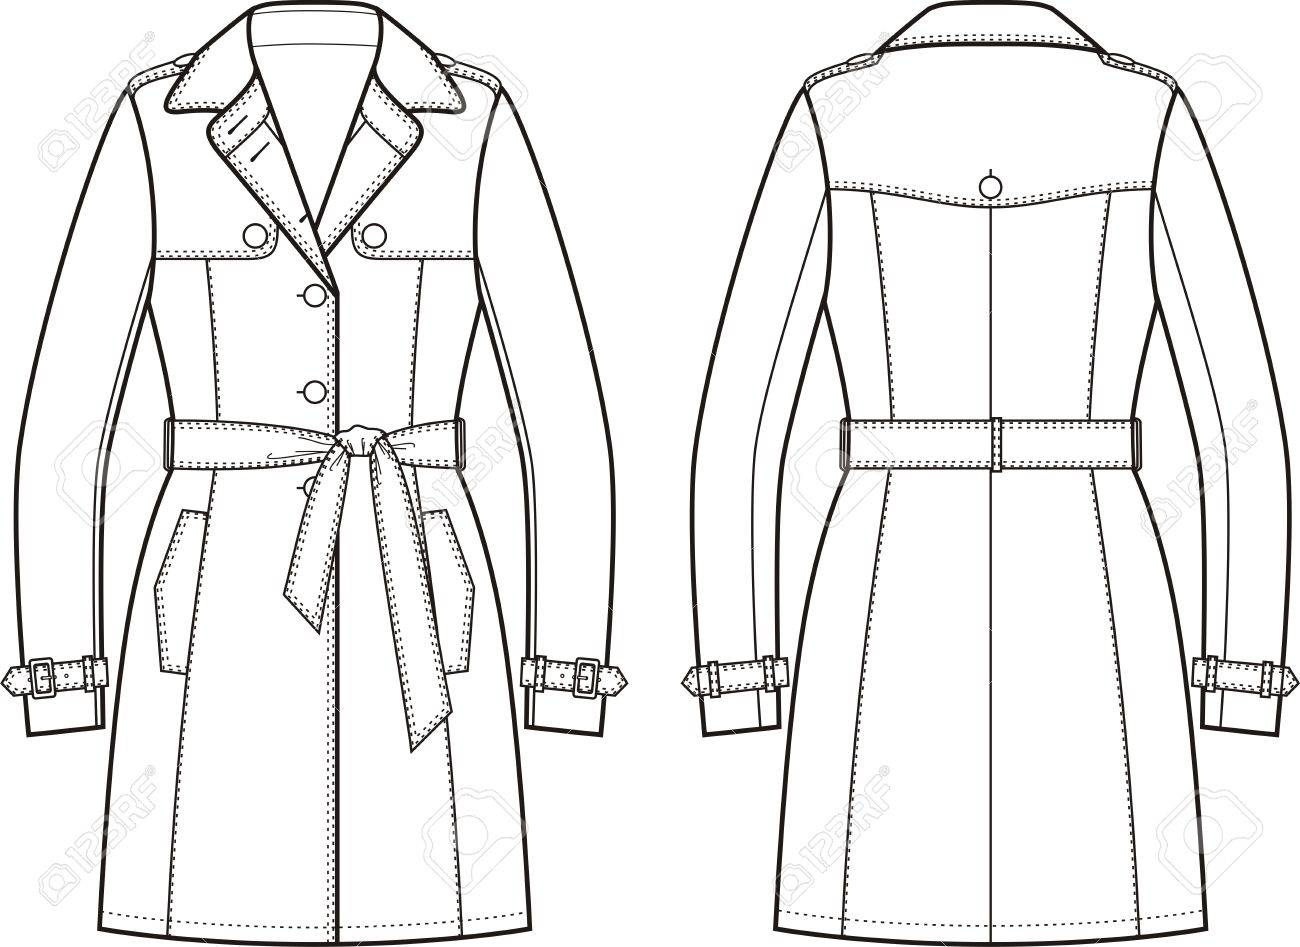 1300x947 Vector Illustration Of Women's Trench Coat. Front And Back Views